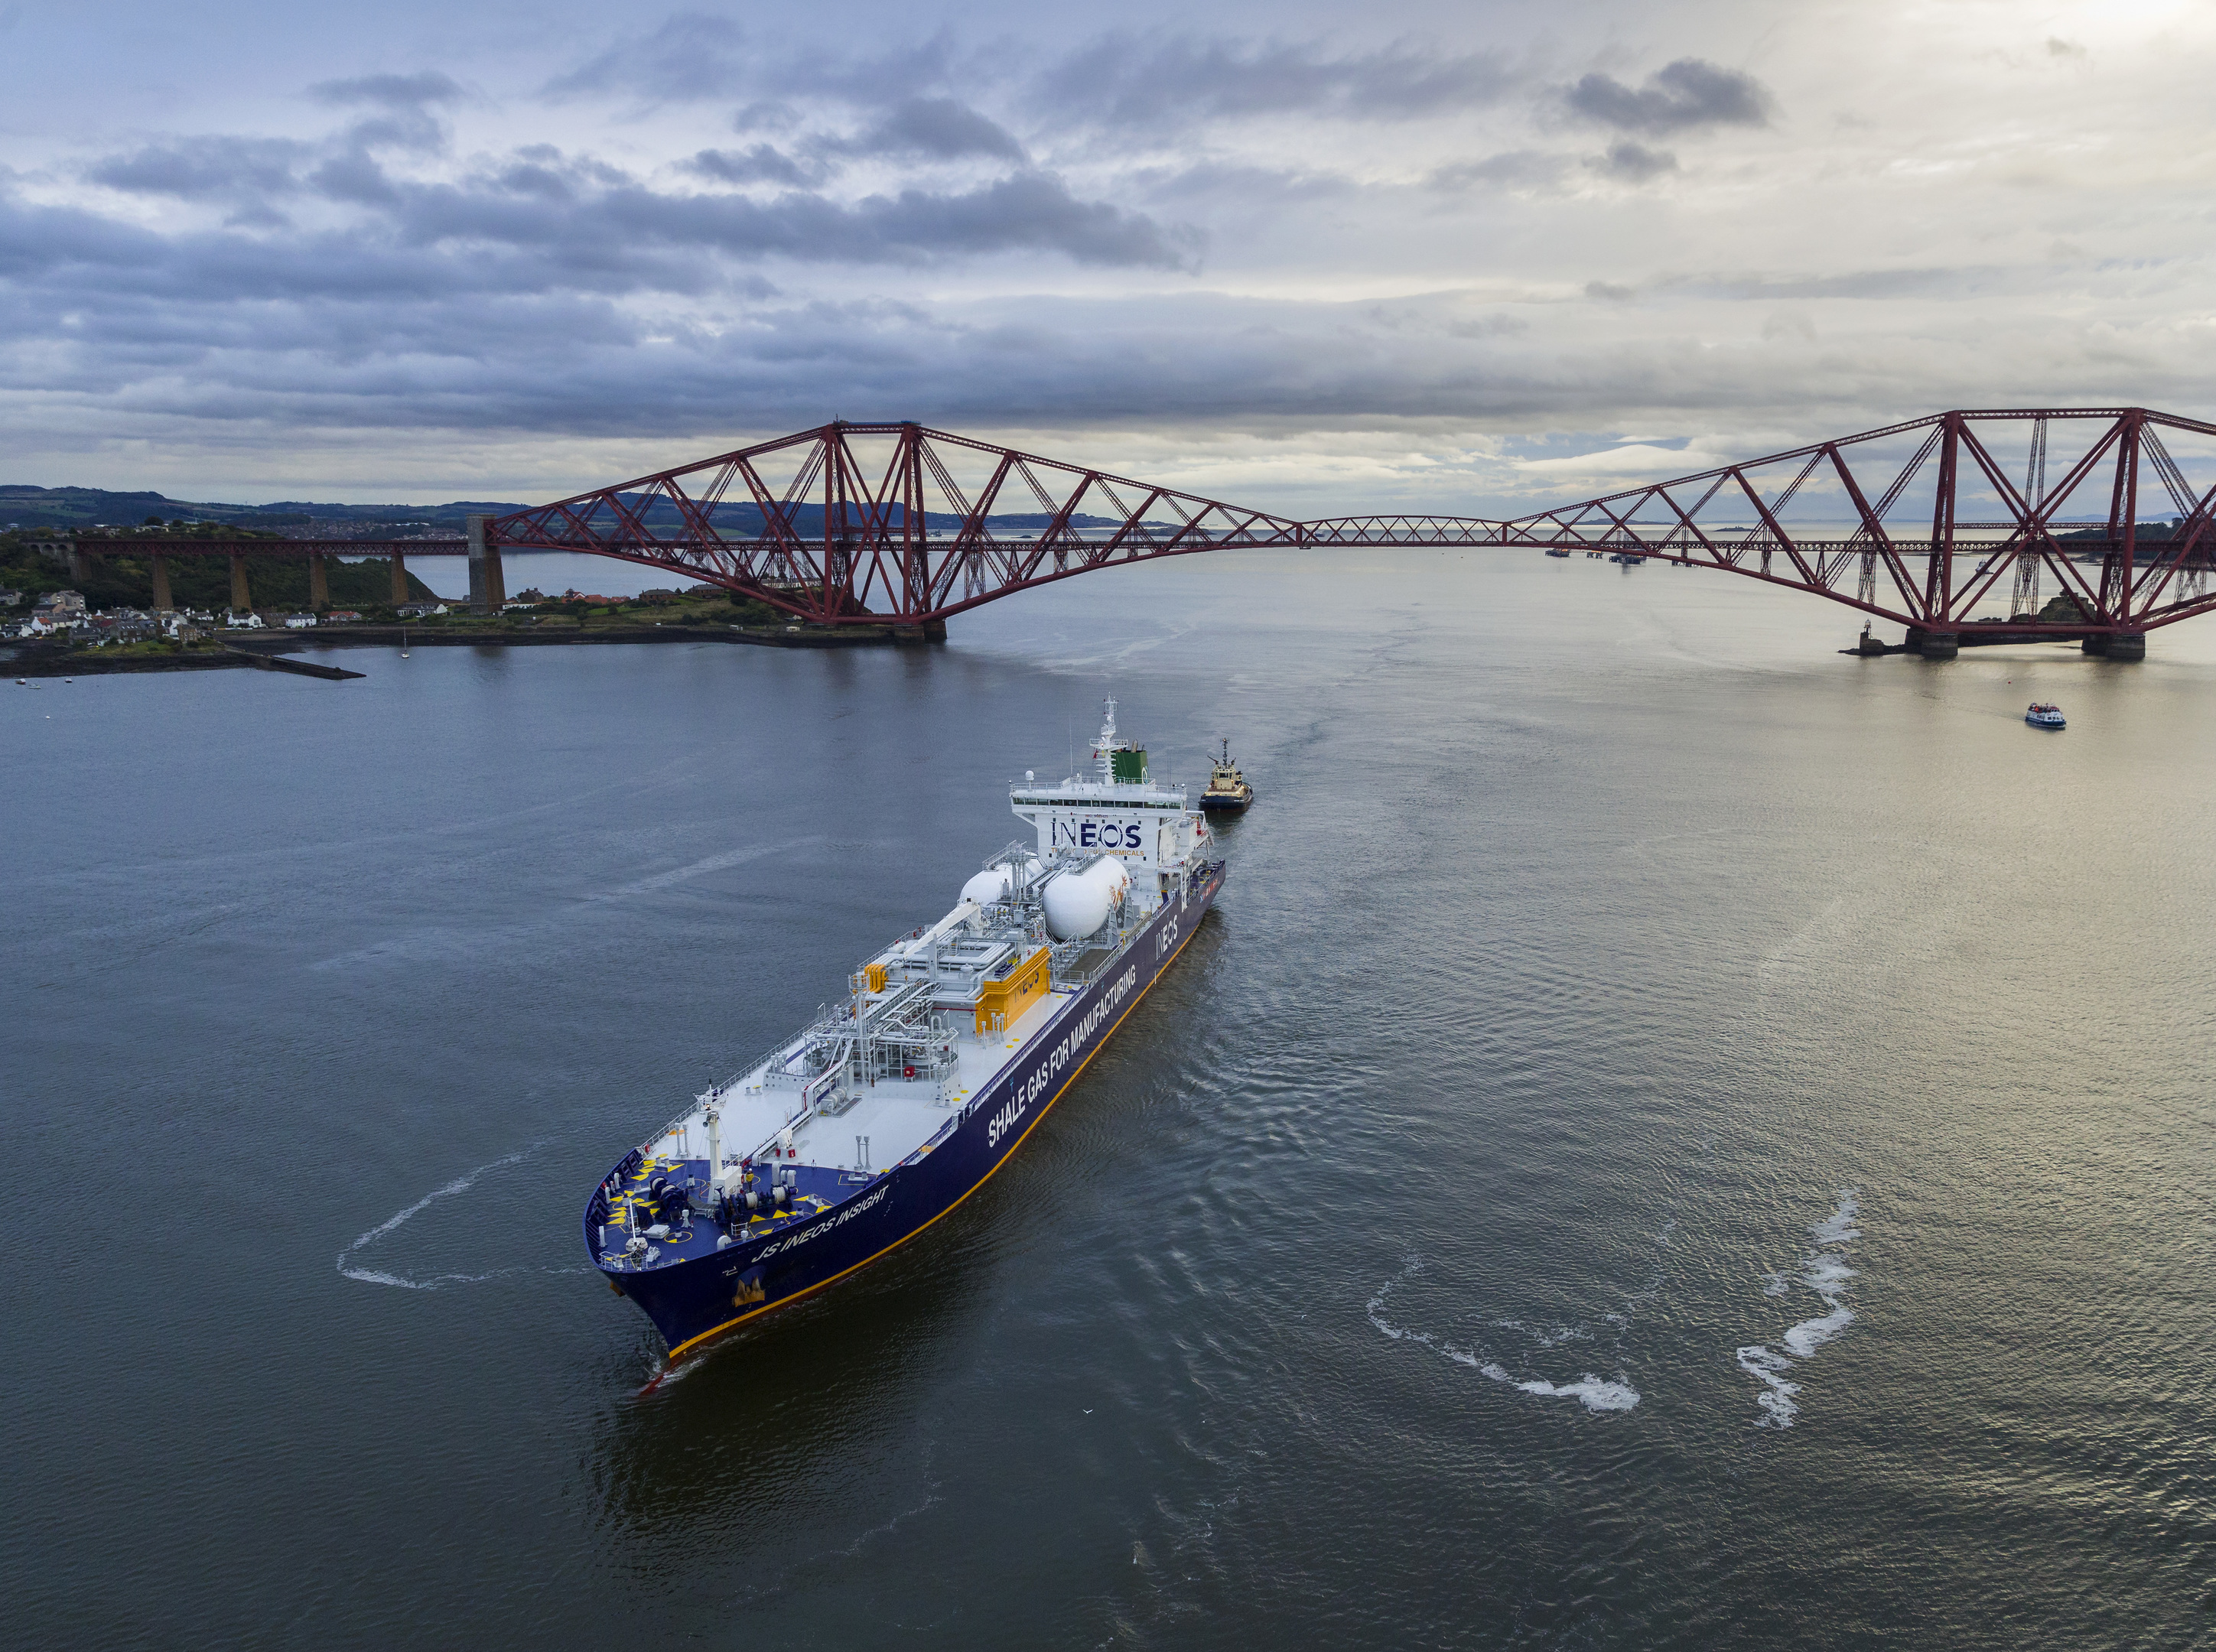 The JS INEOS Insight, laden with US shale gas, sails under the Forth Rail Bridge as it arrives in Scotland before docking at INEOS Grangemouth